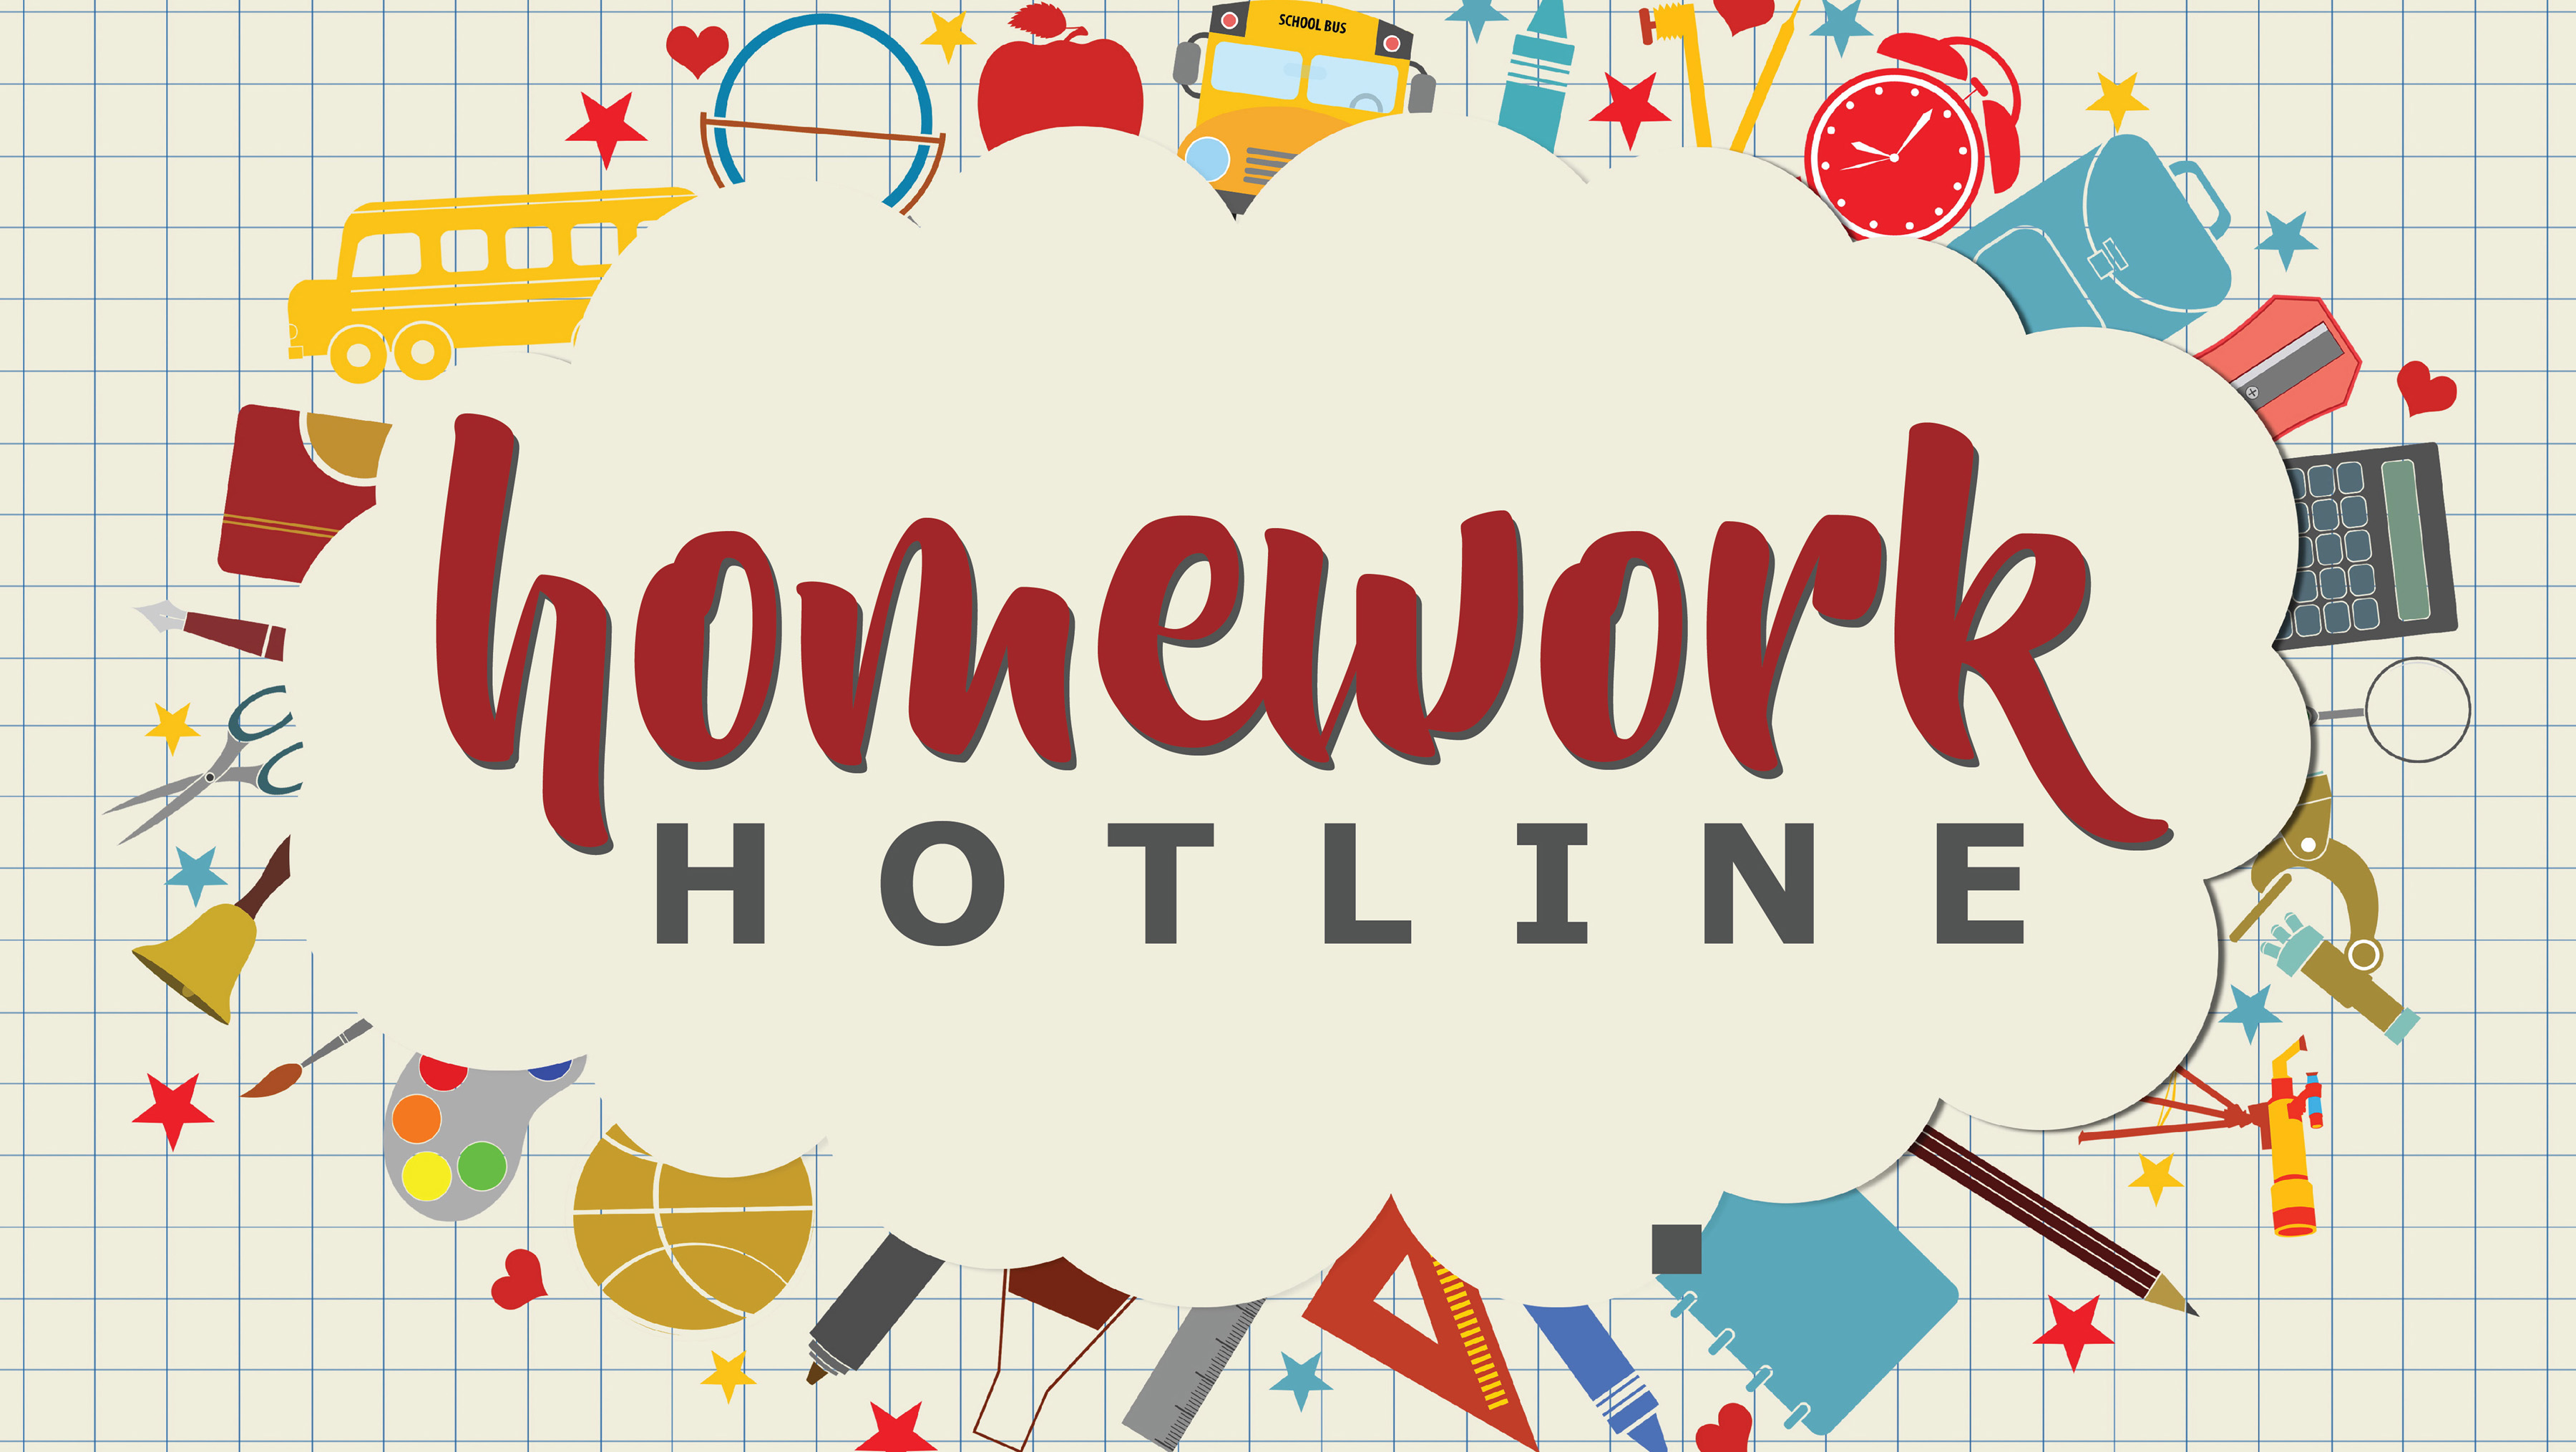 Homework helpline phone number